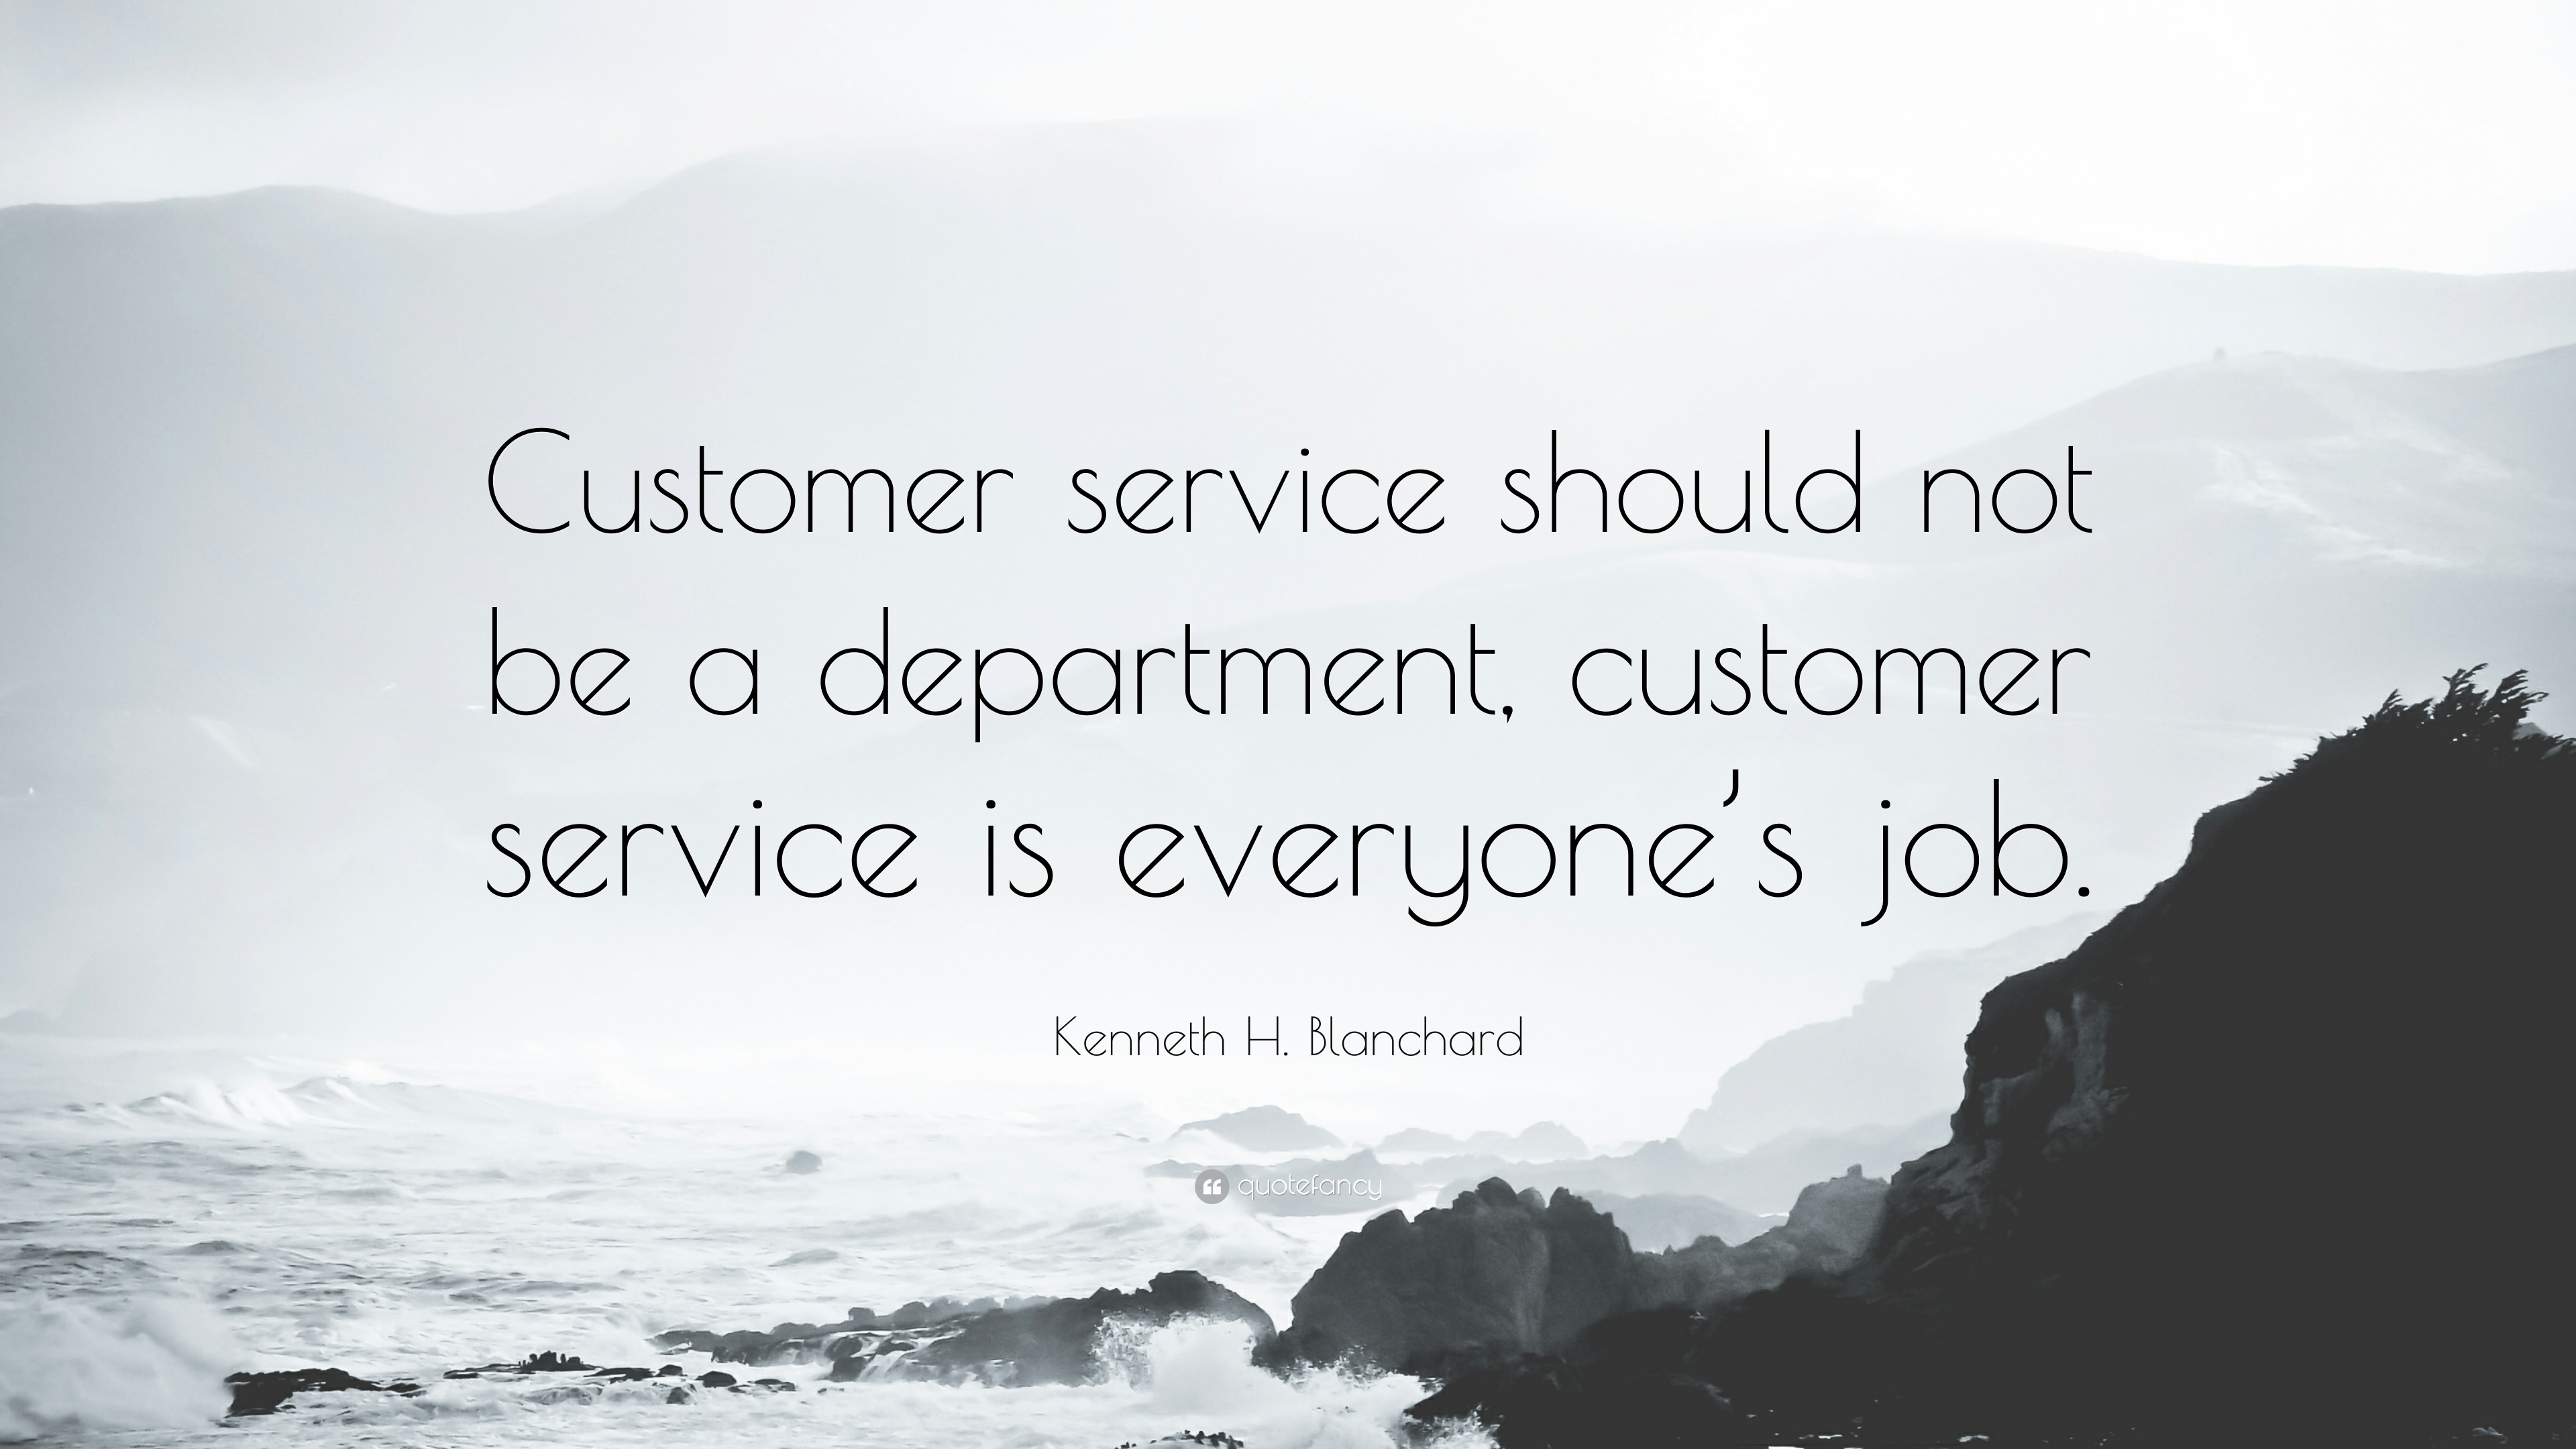 kenneth h  blanchard quote   u201ccustomer service should not be a department  customer service is